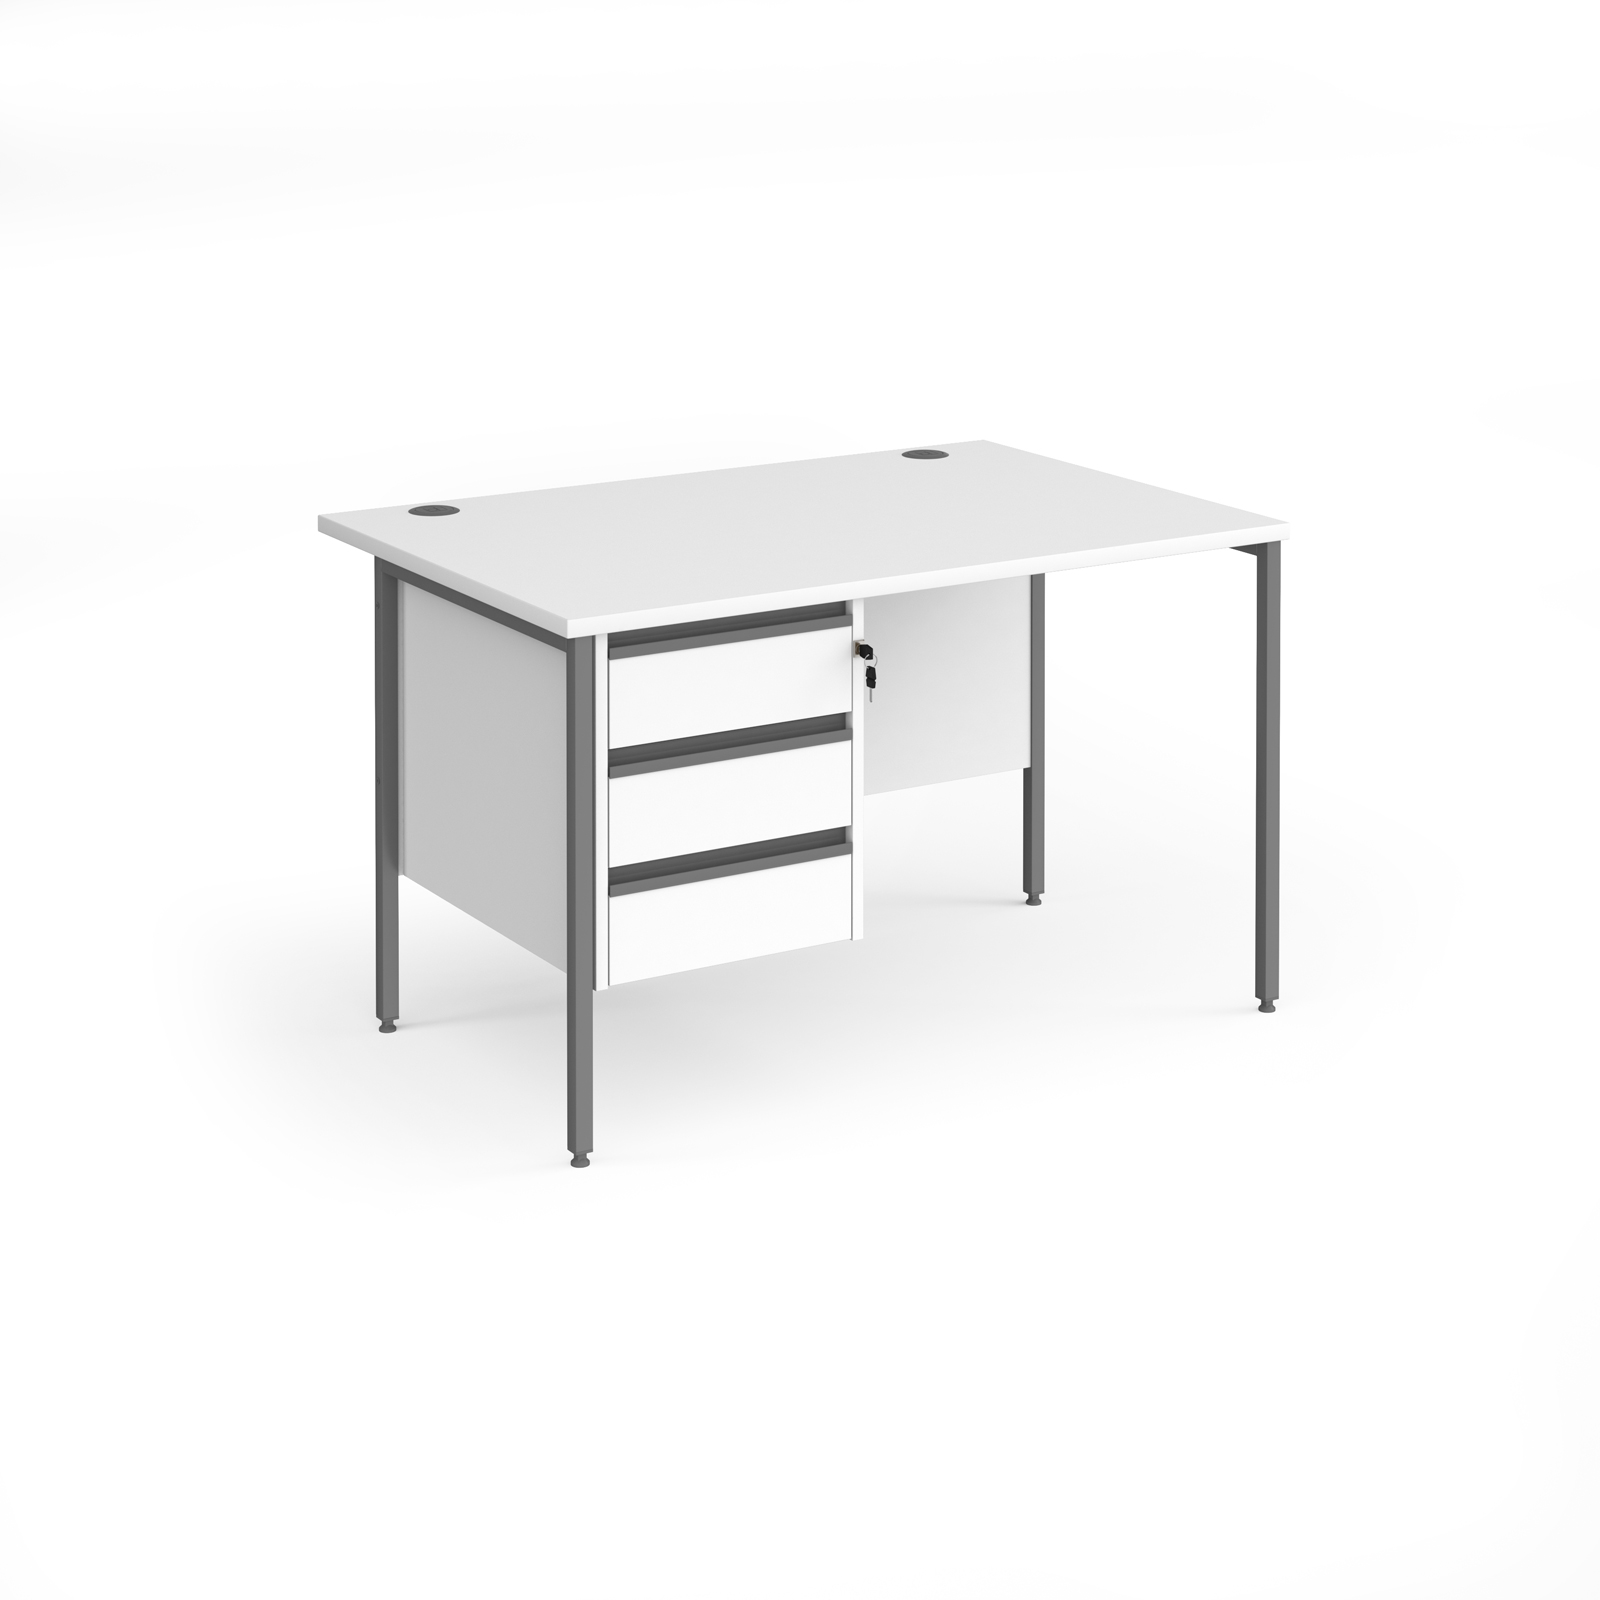 Rectangular Desks Contract 25 straight desk with 3 drawer pedestal and graphite H-Frame leg 1200mm x 800mm - white top